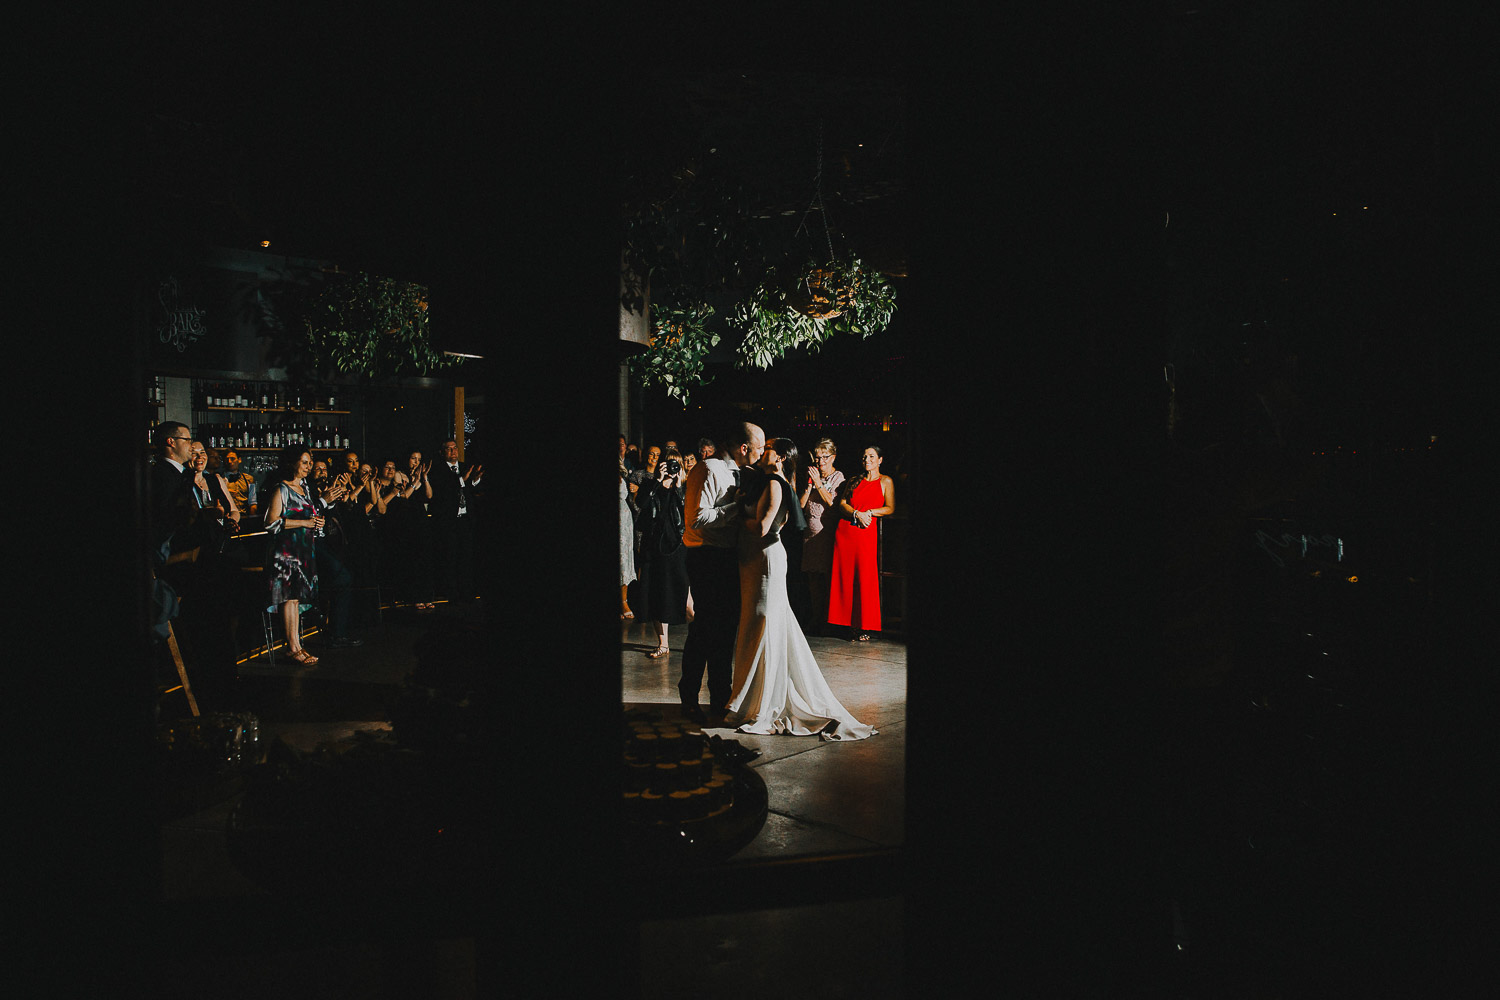 Most creative first dance photos